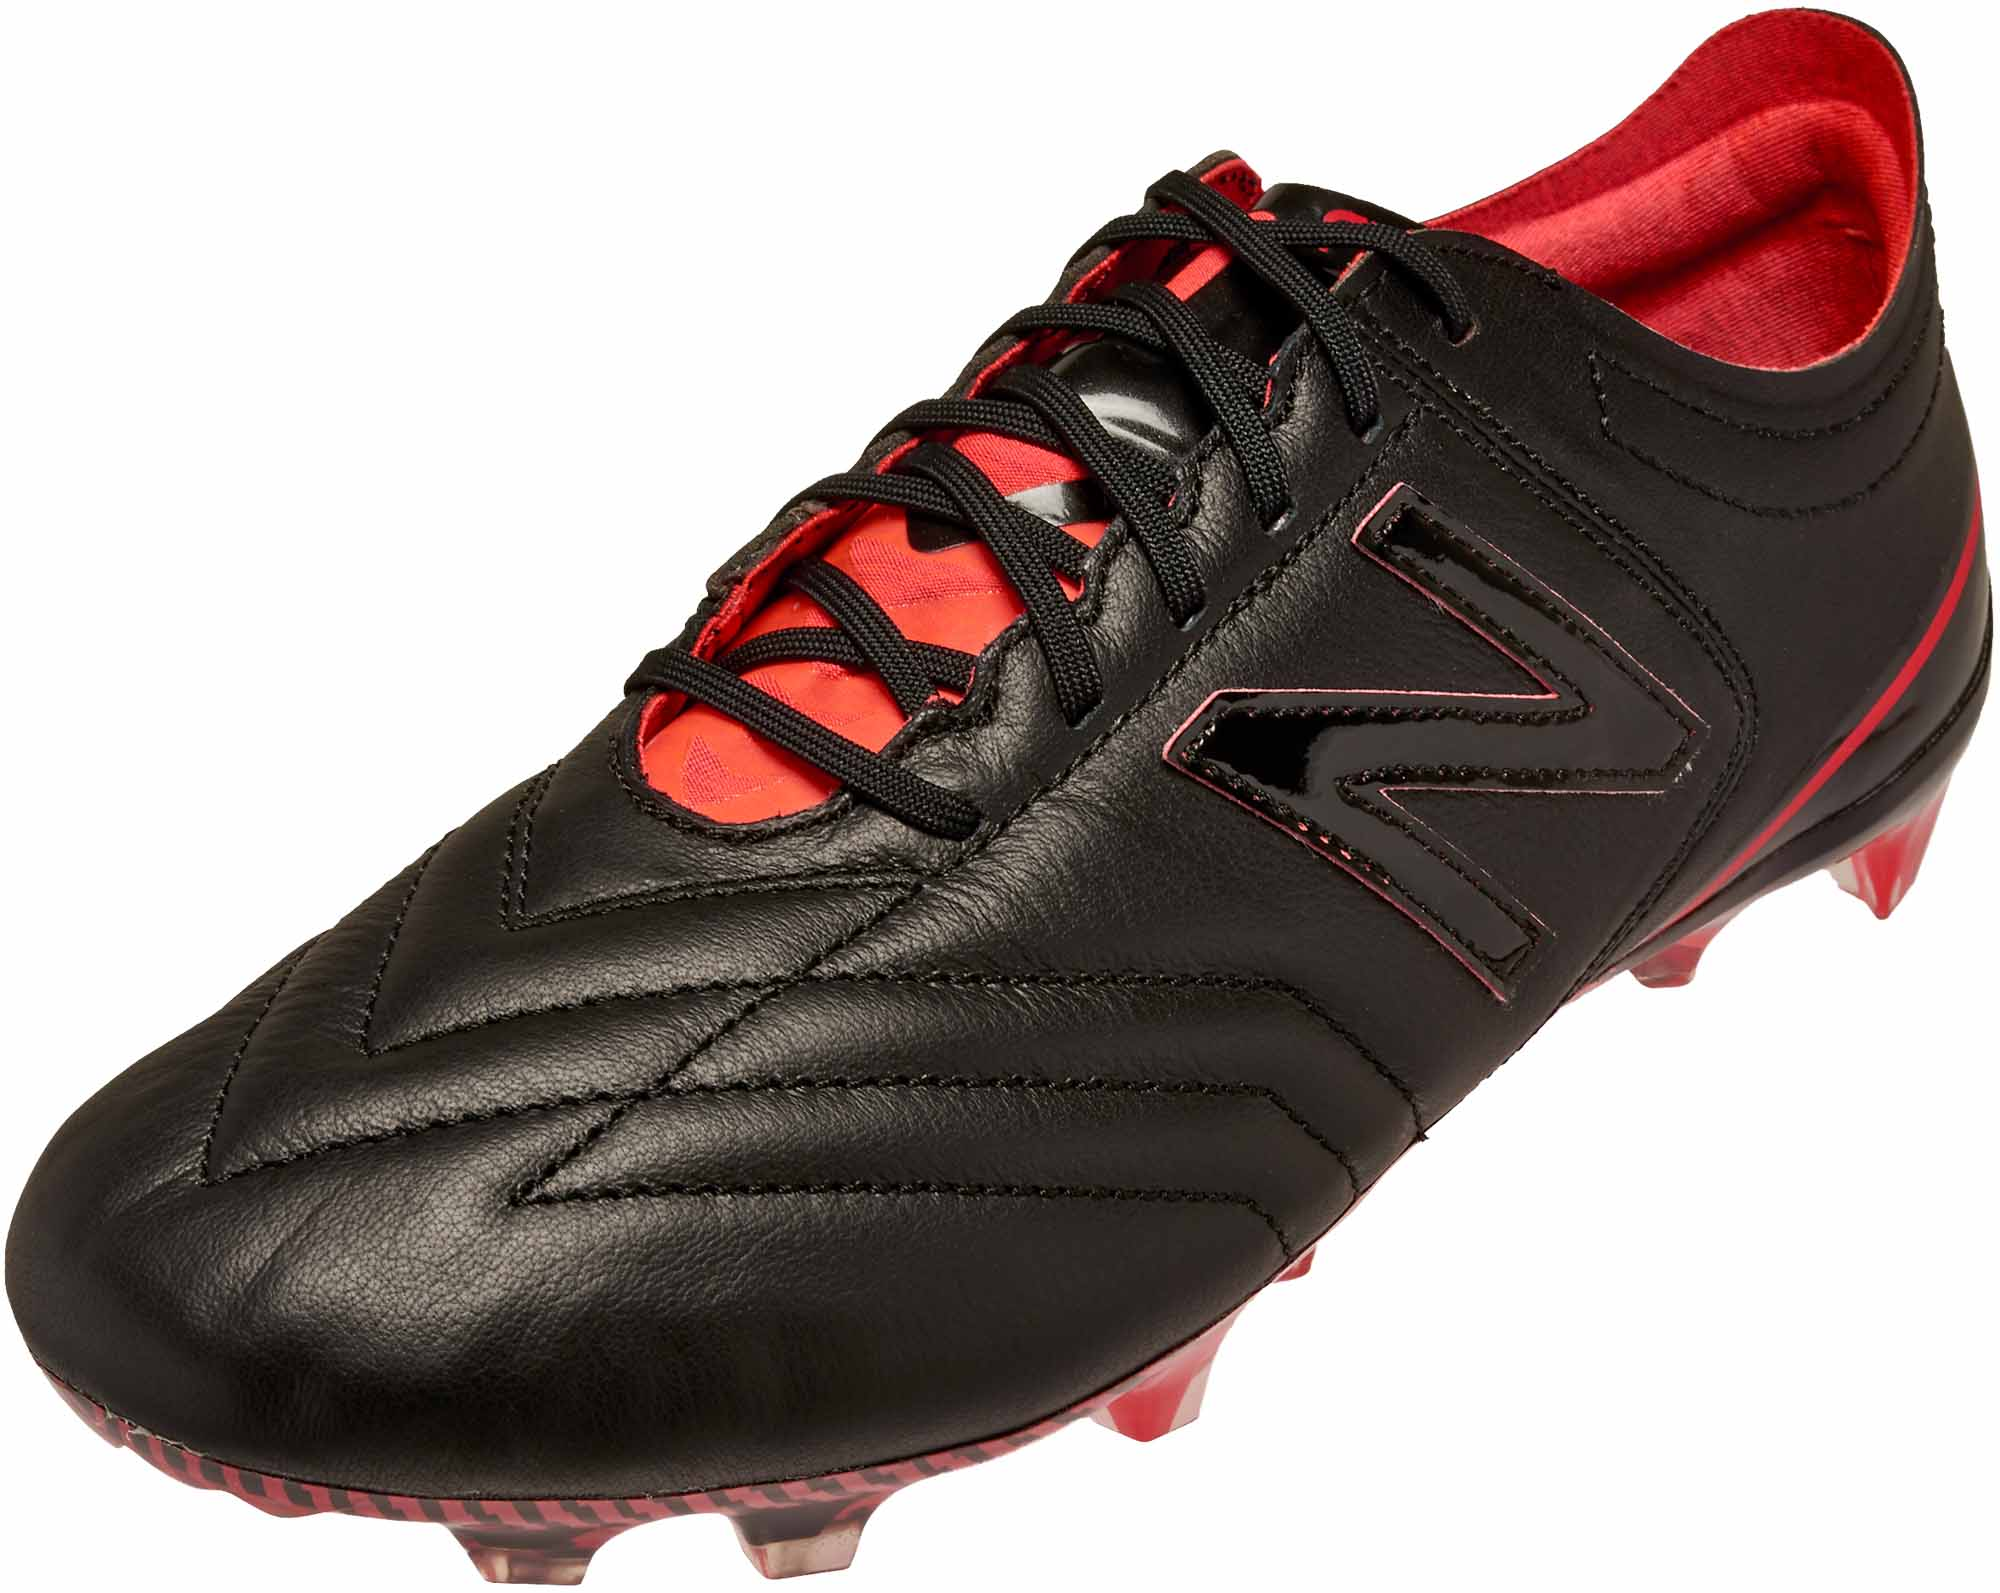 b6cfdab17e938 New Balance Furon 3.0 FG Soccer Cleats – K-Leather – Black & Energy Red